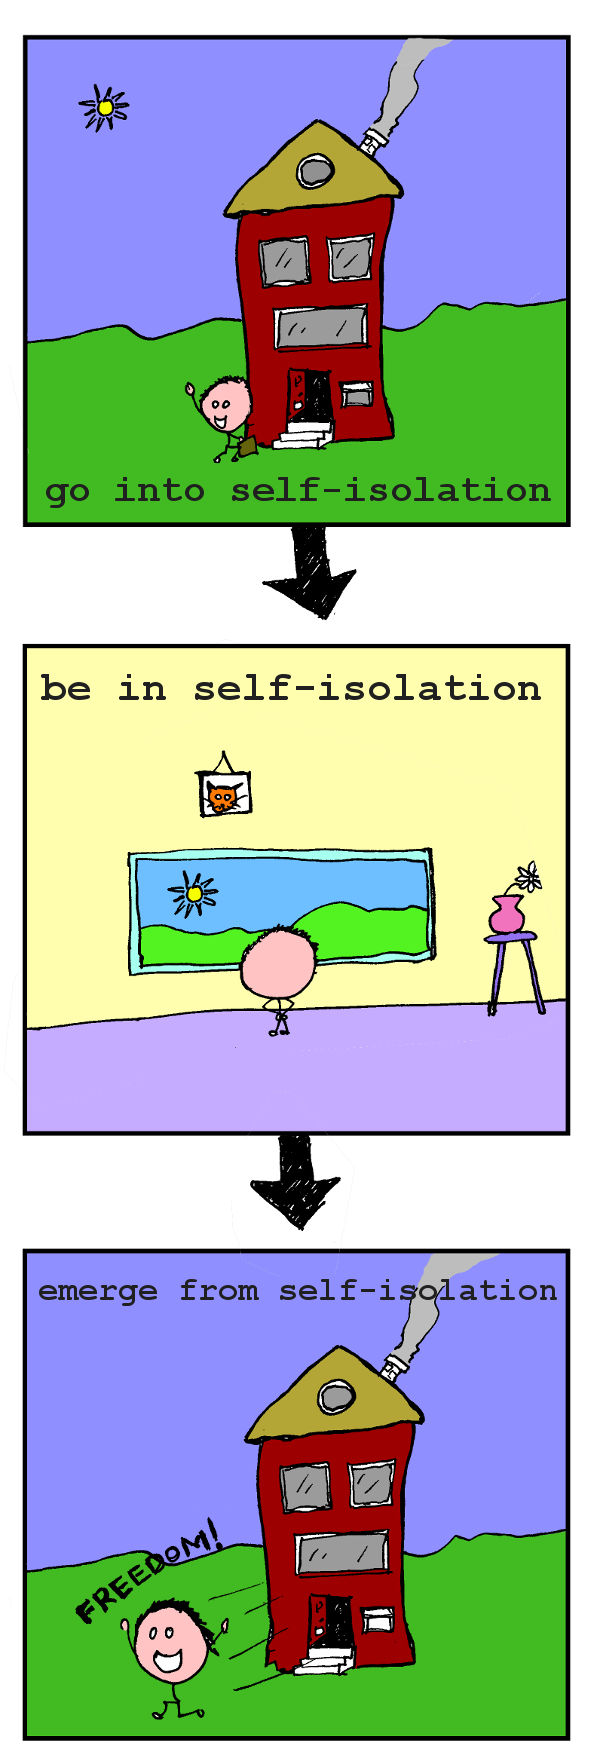 """Three-part comic: image 1 titled """"go into self-isolation"""" shows a waving stick figure walking into a house. Image 2 titled """"be in self-isolation"""" shows a stick figure in a living room looking out the window. Image 3 titled """"emerge from self-isolation"""" shows a stick figure running out of a house shouting """"freedom!"""""""